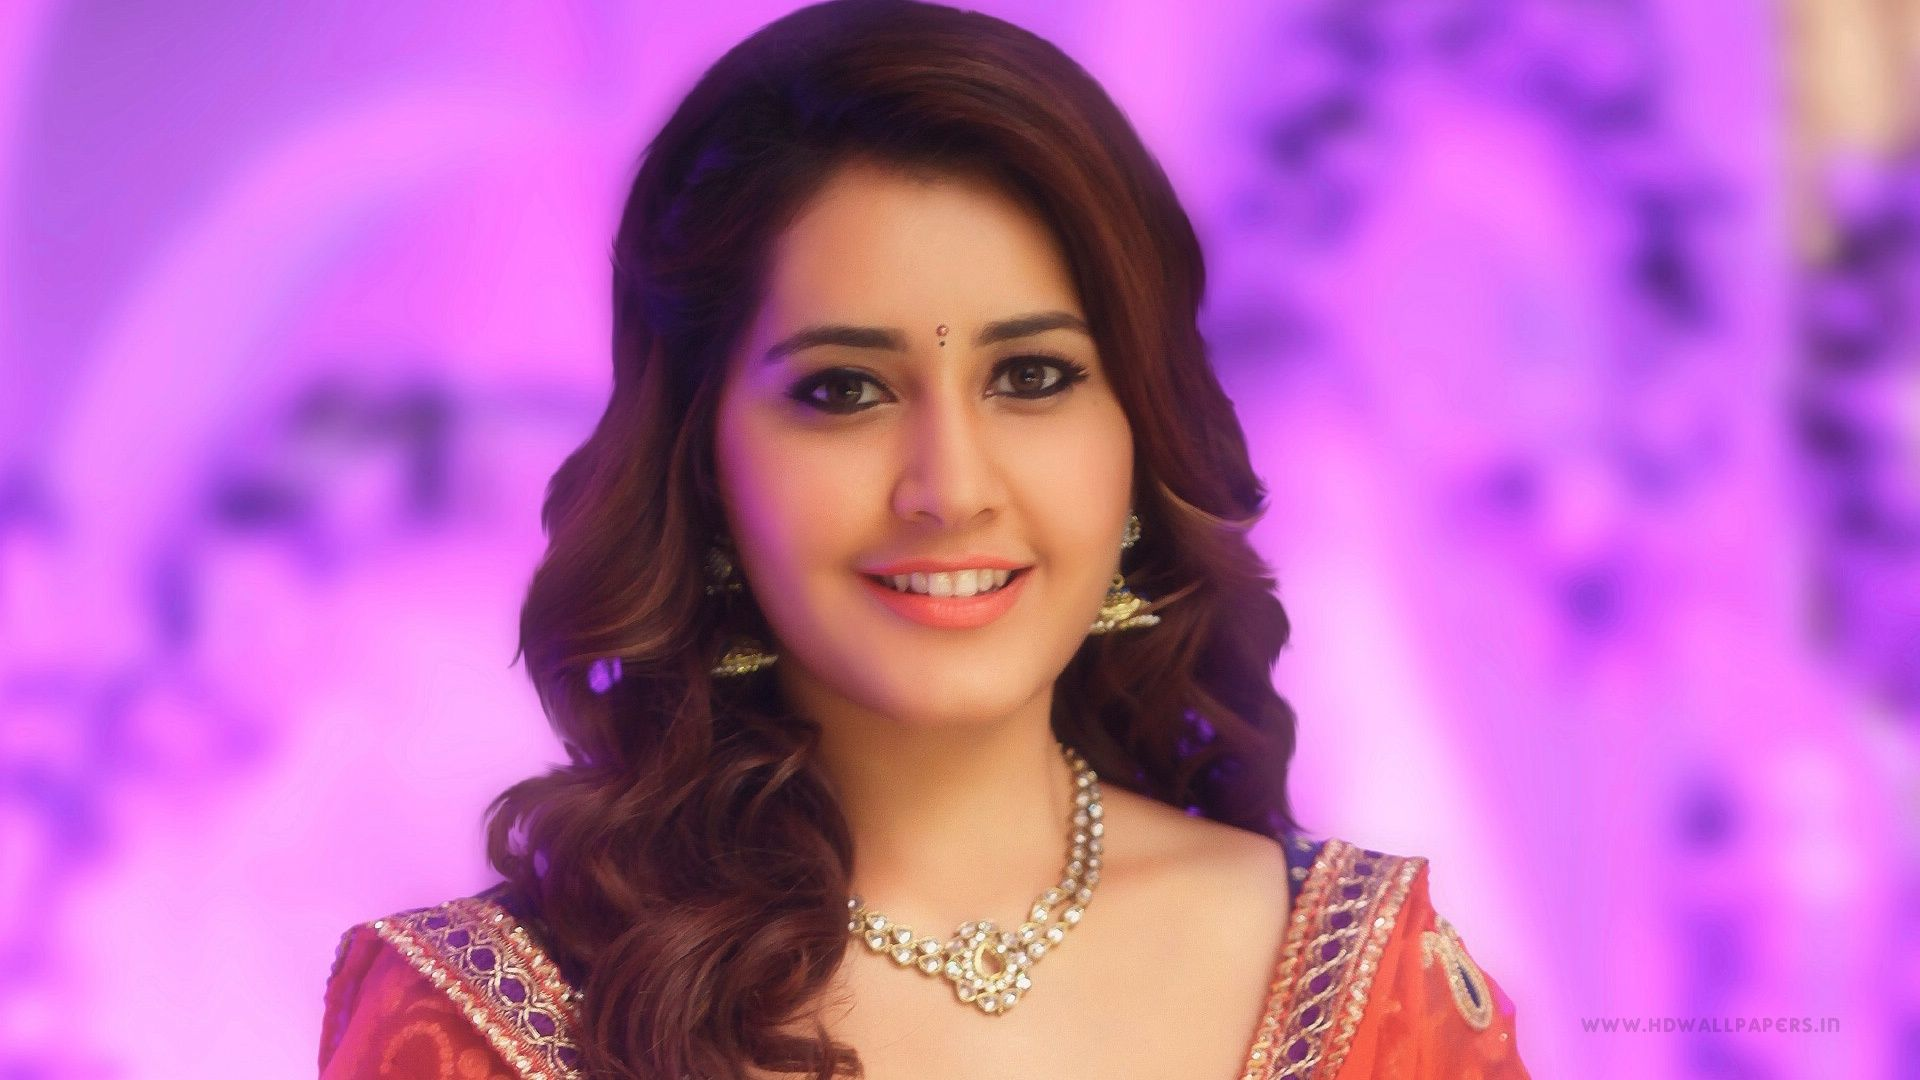 Rashi Khanna Indian Actress Wallpapers In Jpg Format Rashi